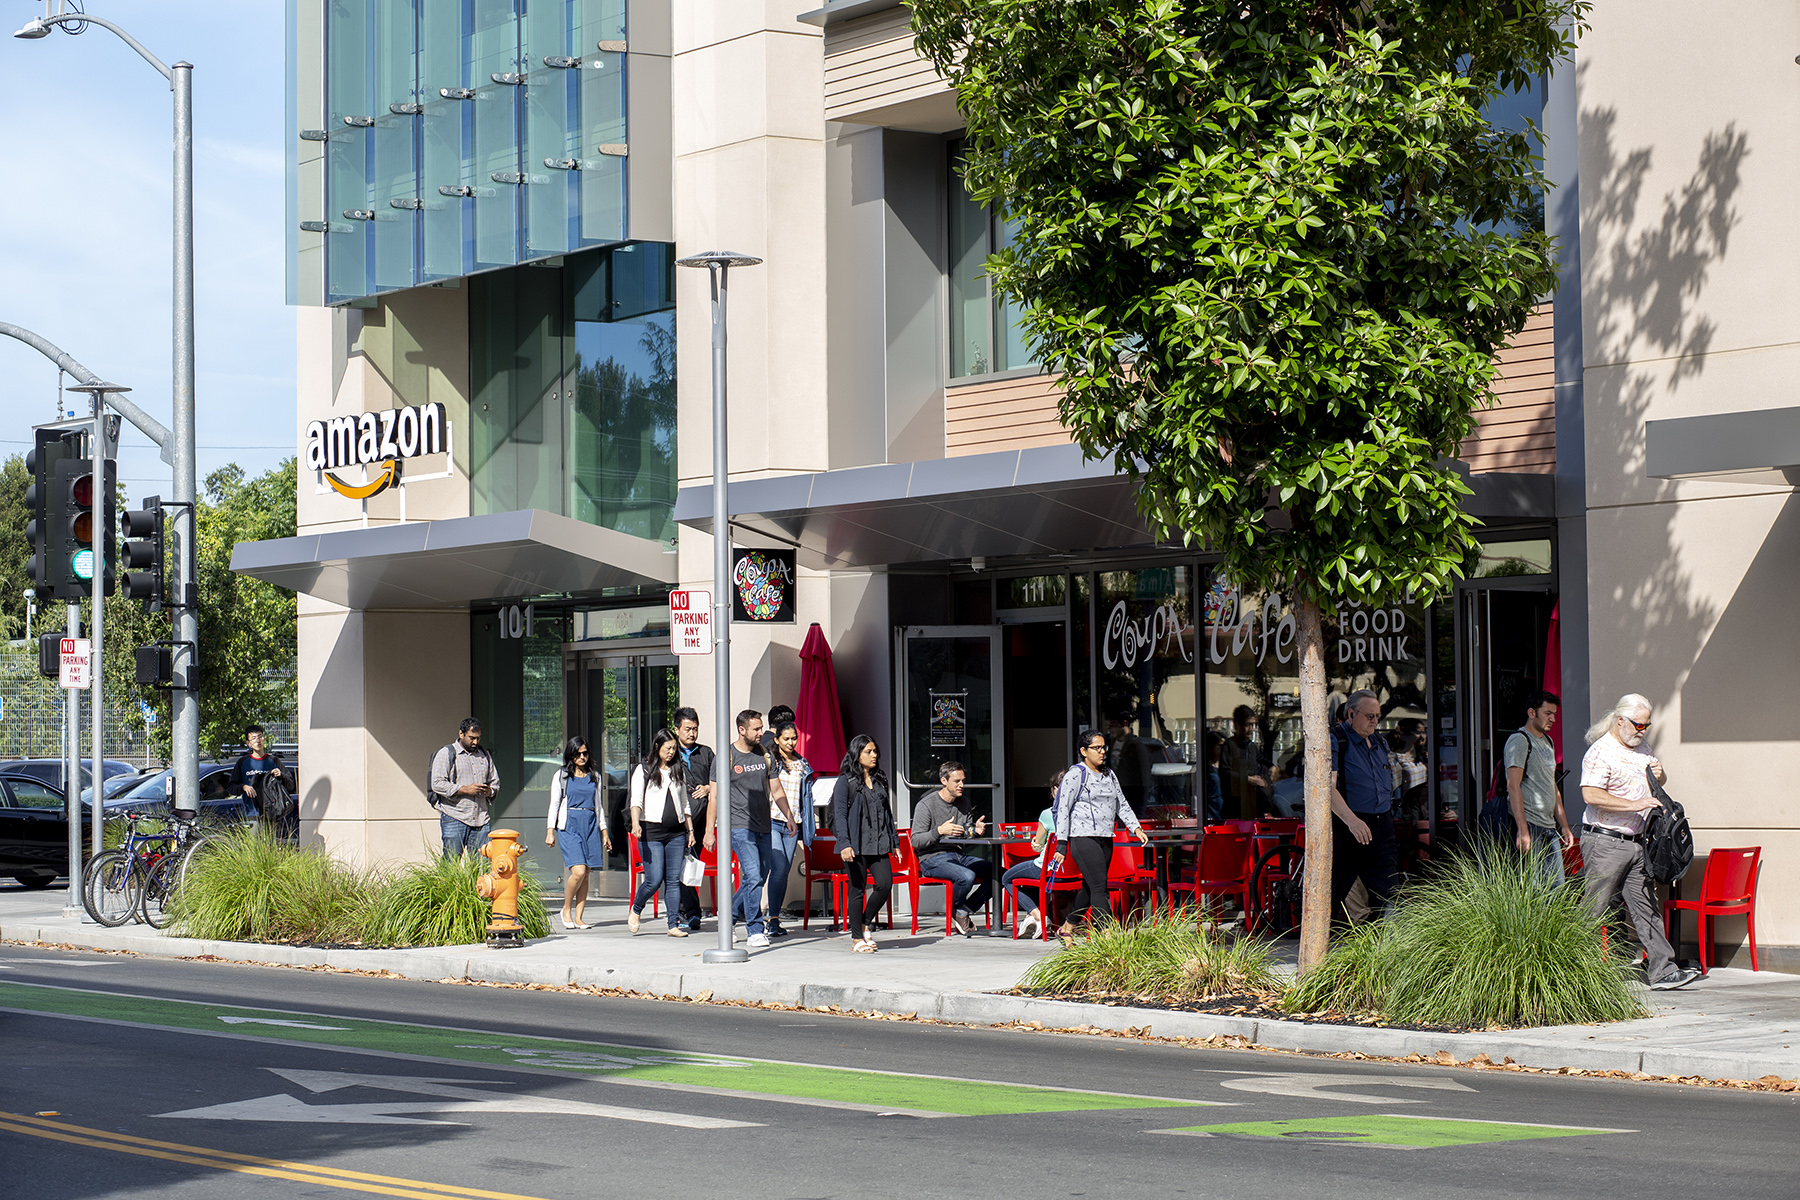 An office building used by technology giant Amazon is seen, with a bustling cafe on the building's street level, in Palo Alto, Calif., on June 24, 2019. The company is based in Seattle, but has workers spread out across several Silicon Valley cities.